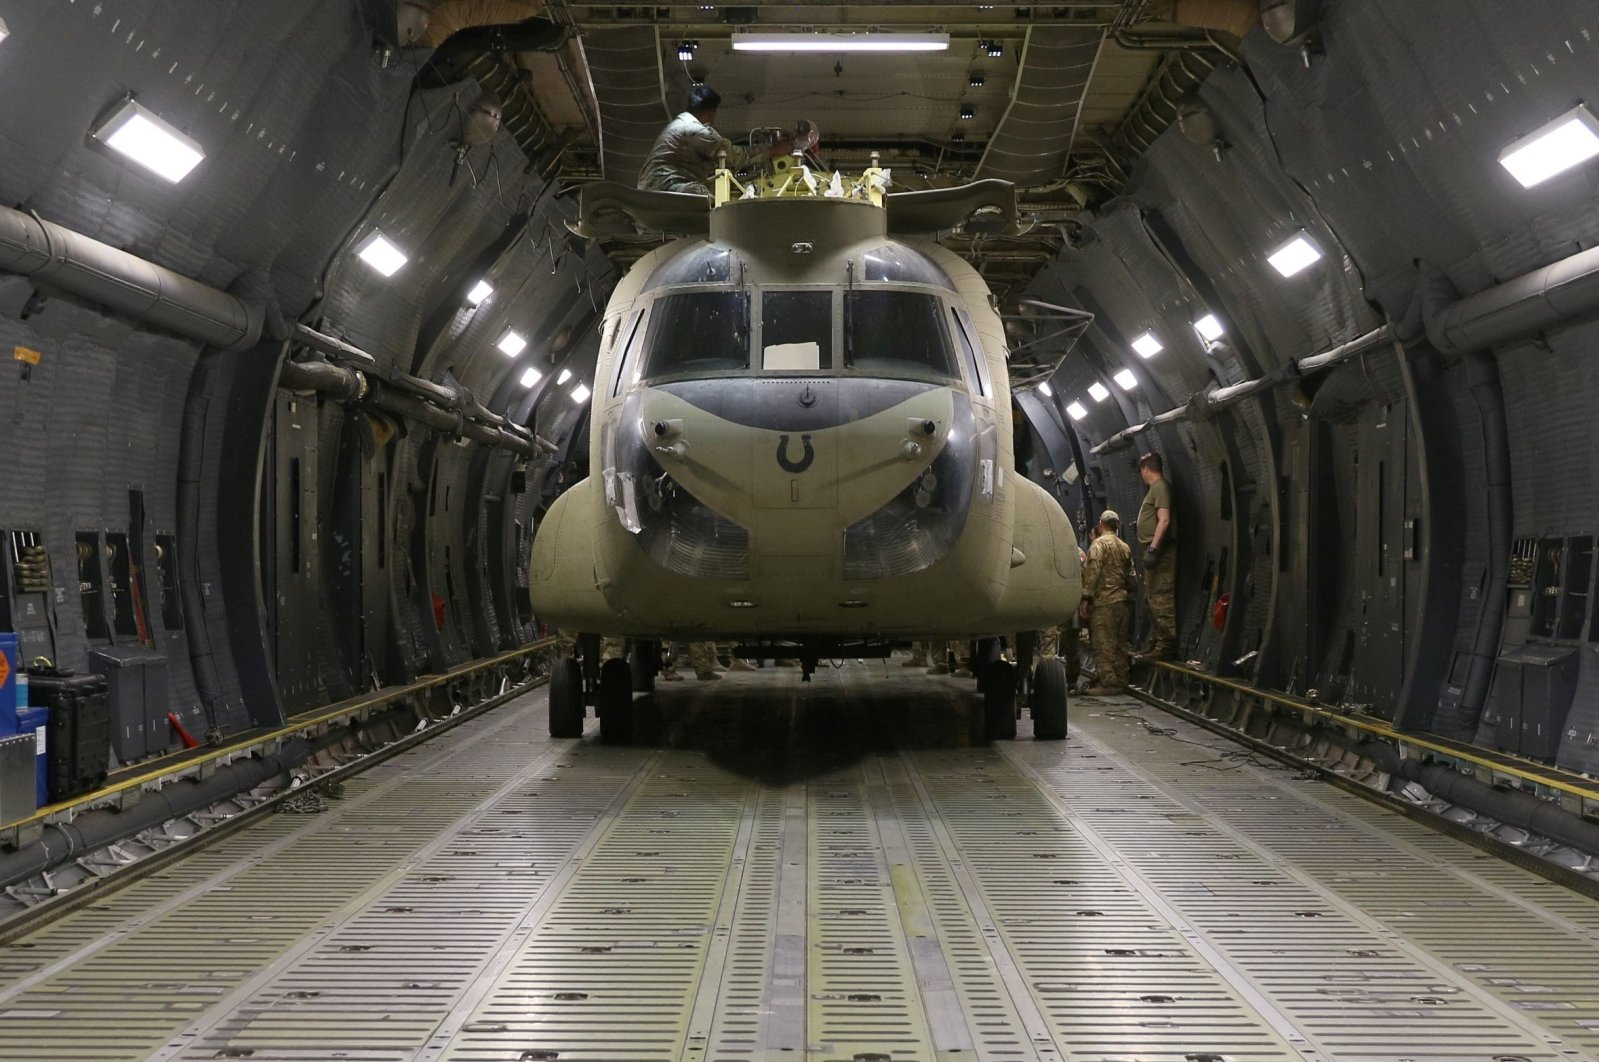 Aerial porters work with maintainers to load a CH-47 Chinook helicopter into a U.S. Air Force C-17 Globemaster III during the withdrawl of American forces from Afghanistan, June 16, 2021. (U.S. Army/Sgt. 1st Class Corey Vandiver via Reuters)